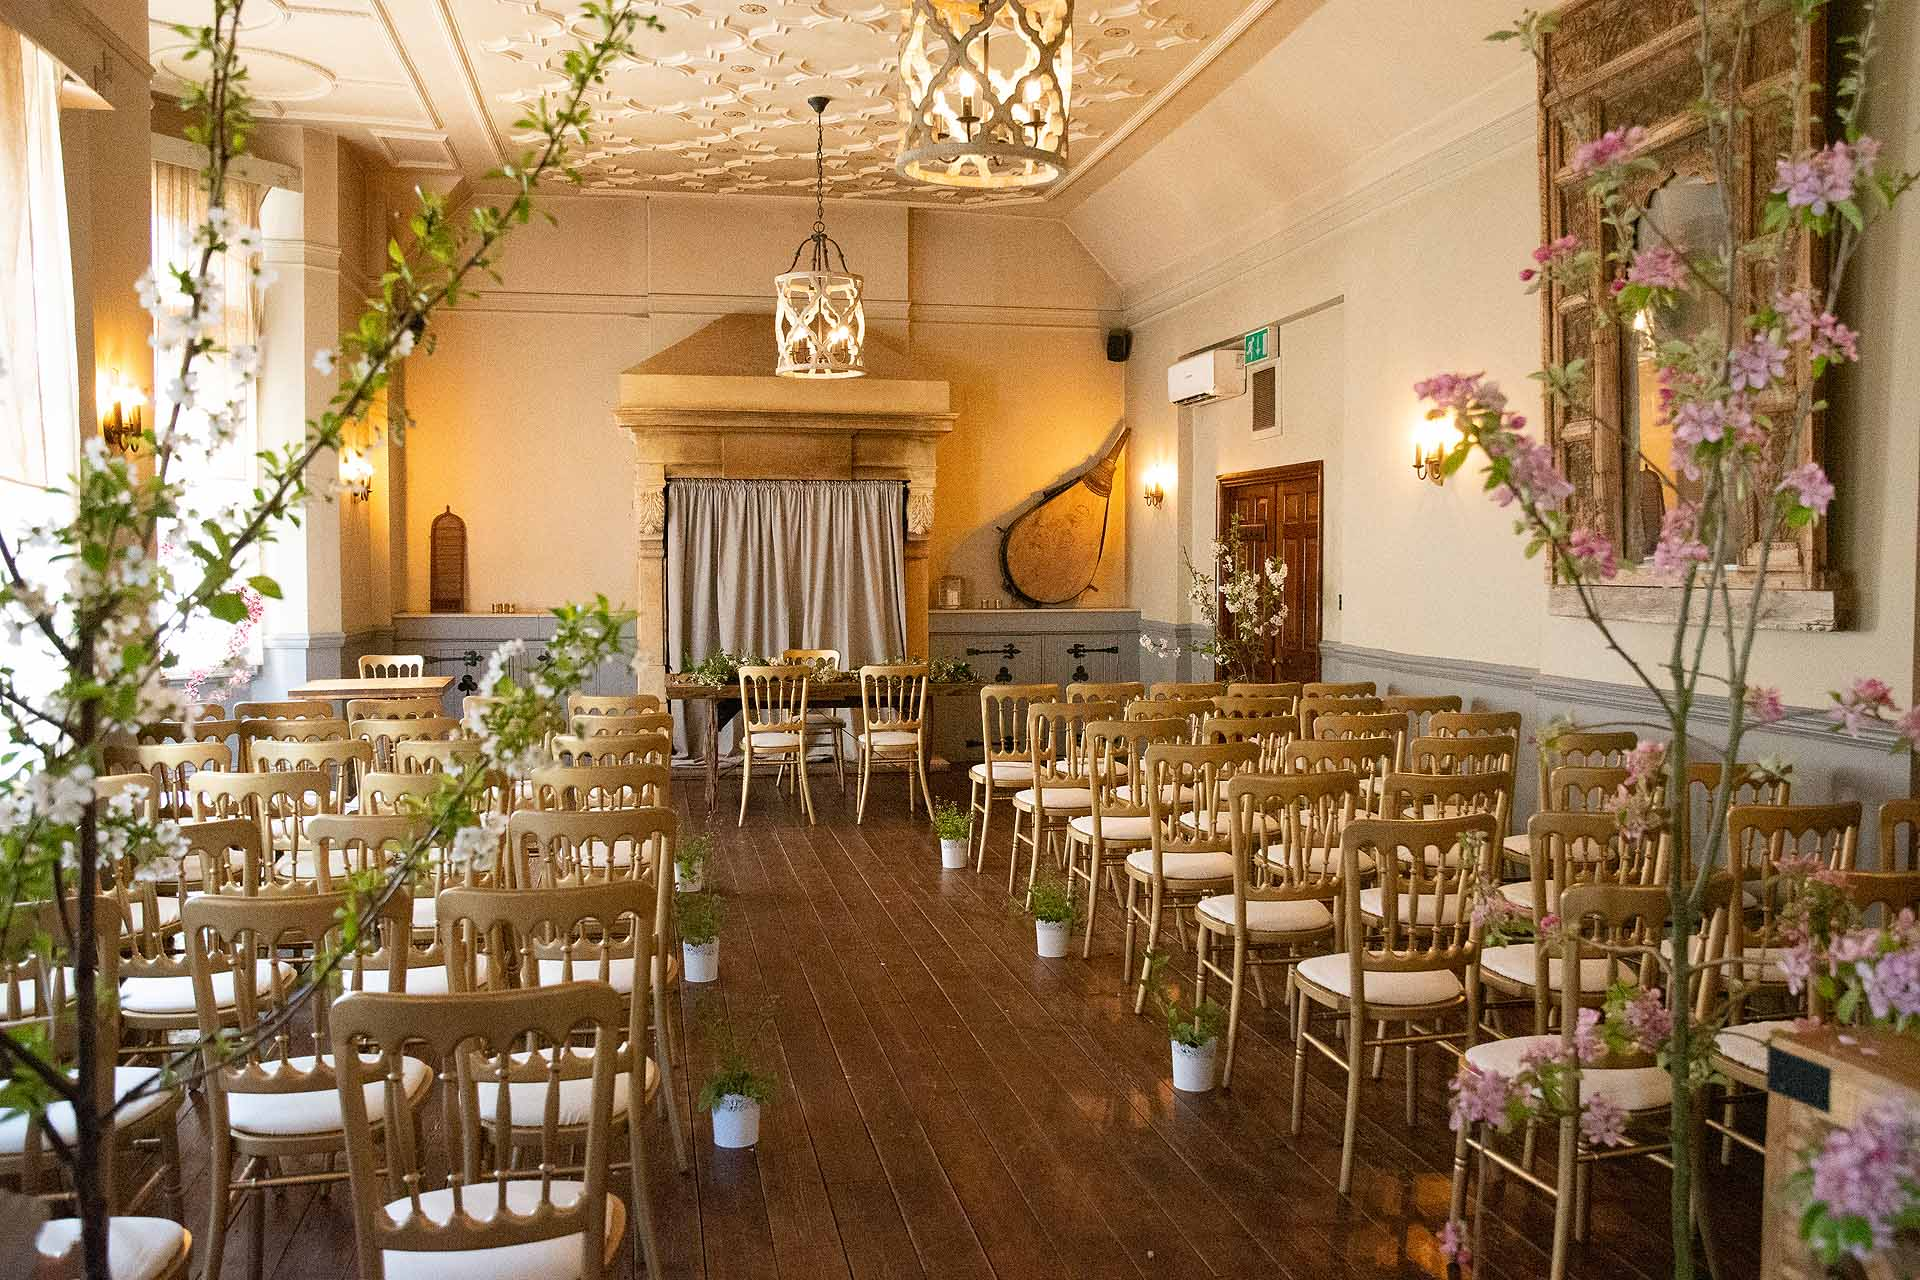 ceremony room at the Elephant Hotel in Pangbourne